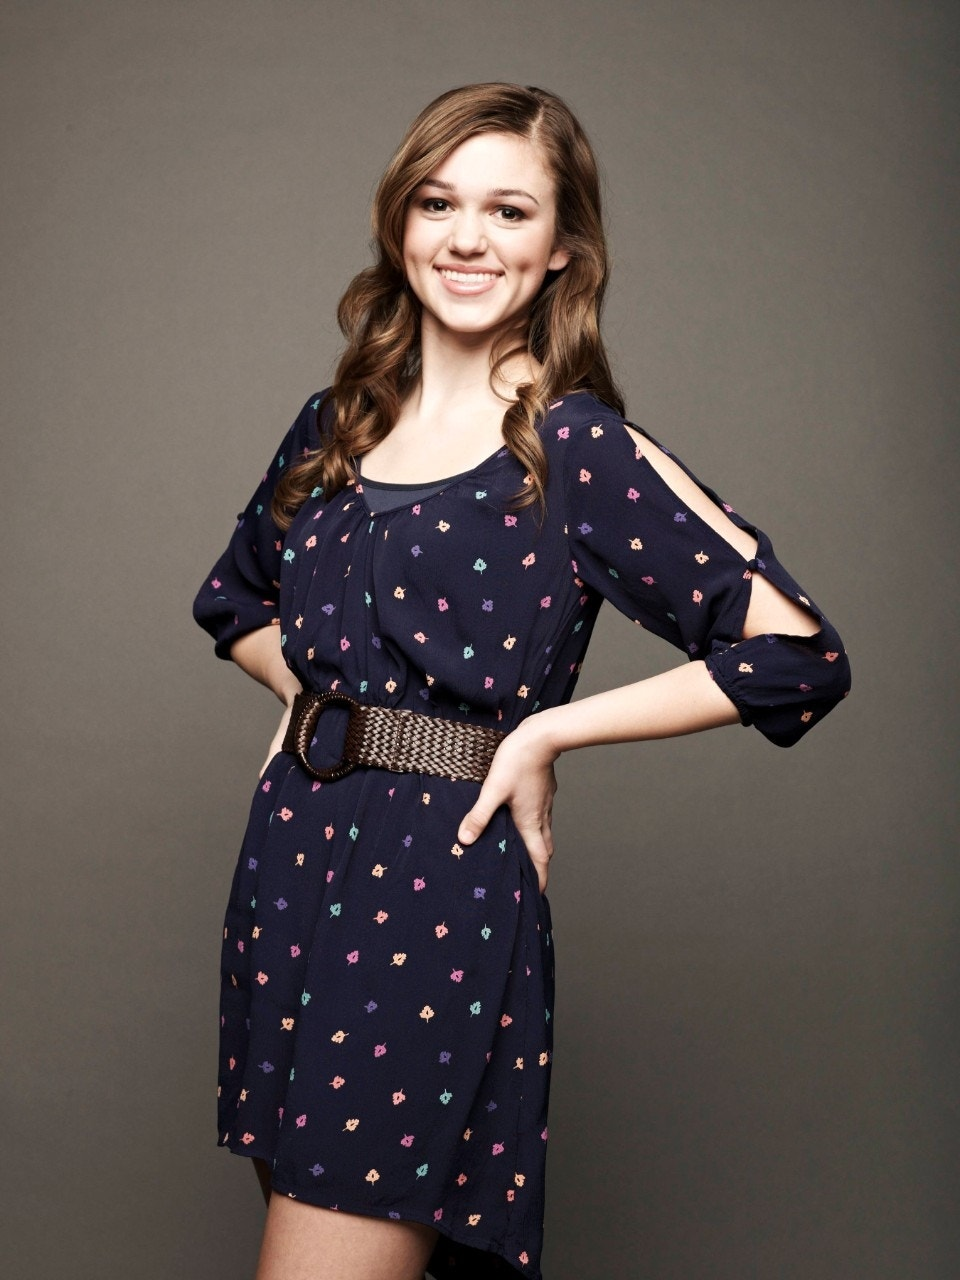 Sadie Robertson: It's an 'honor' to be compared to the Duggar family